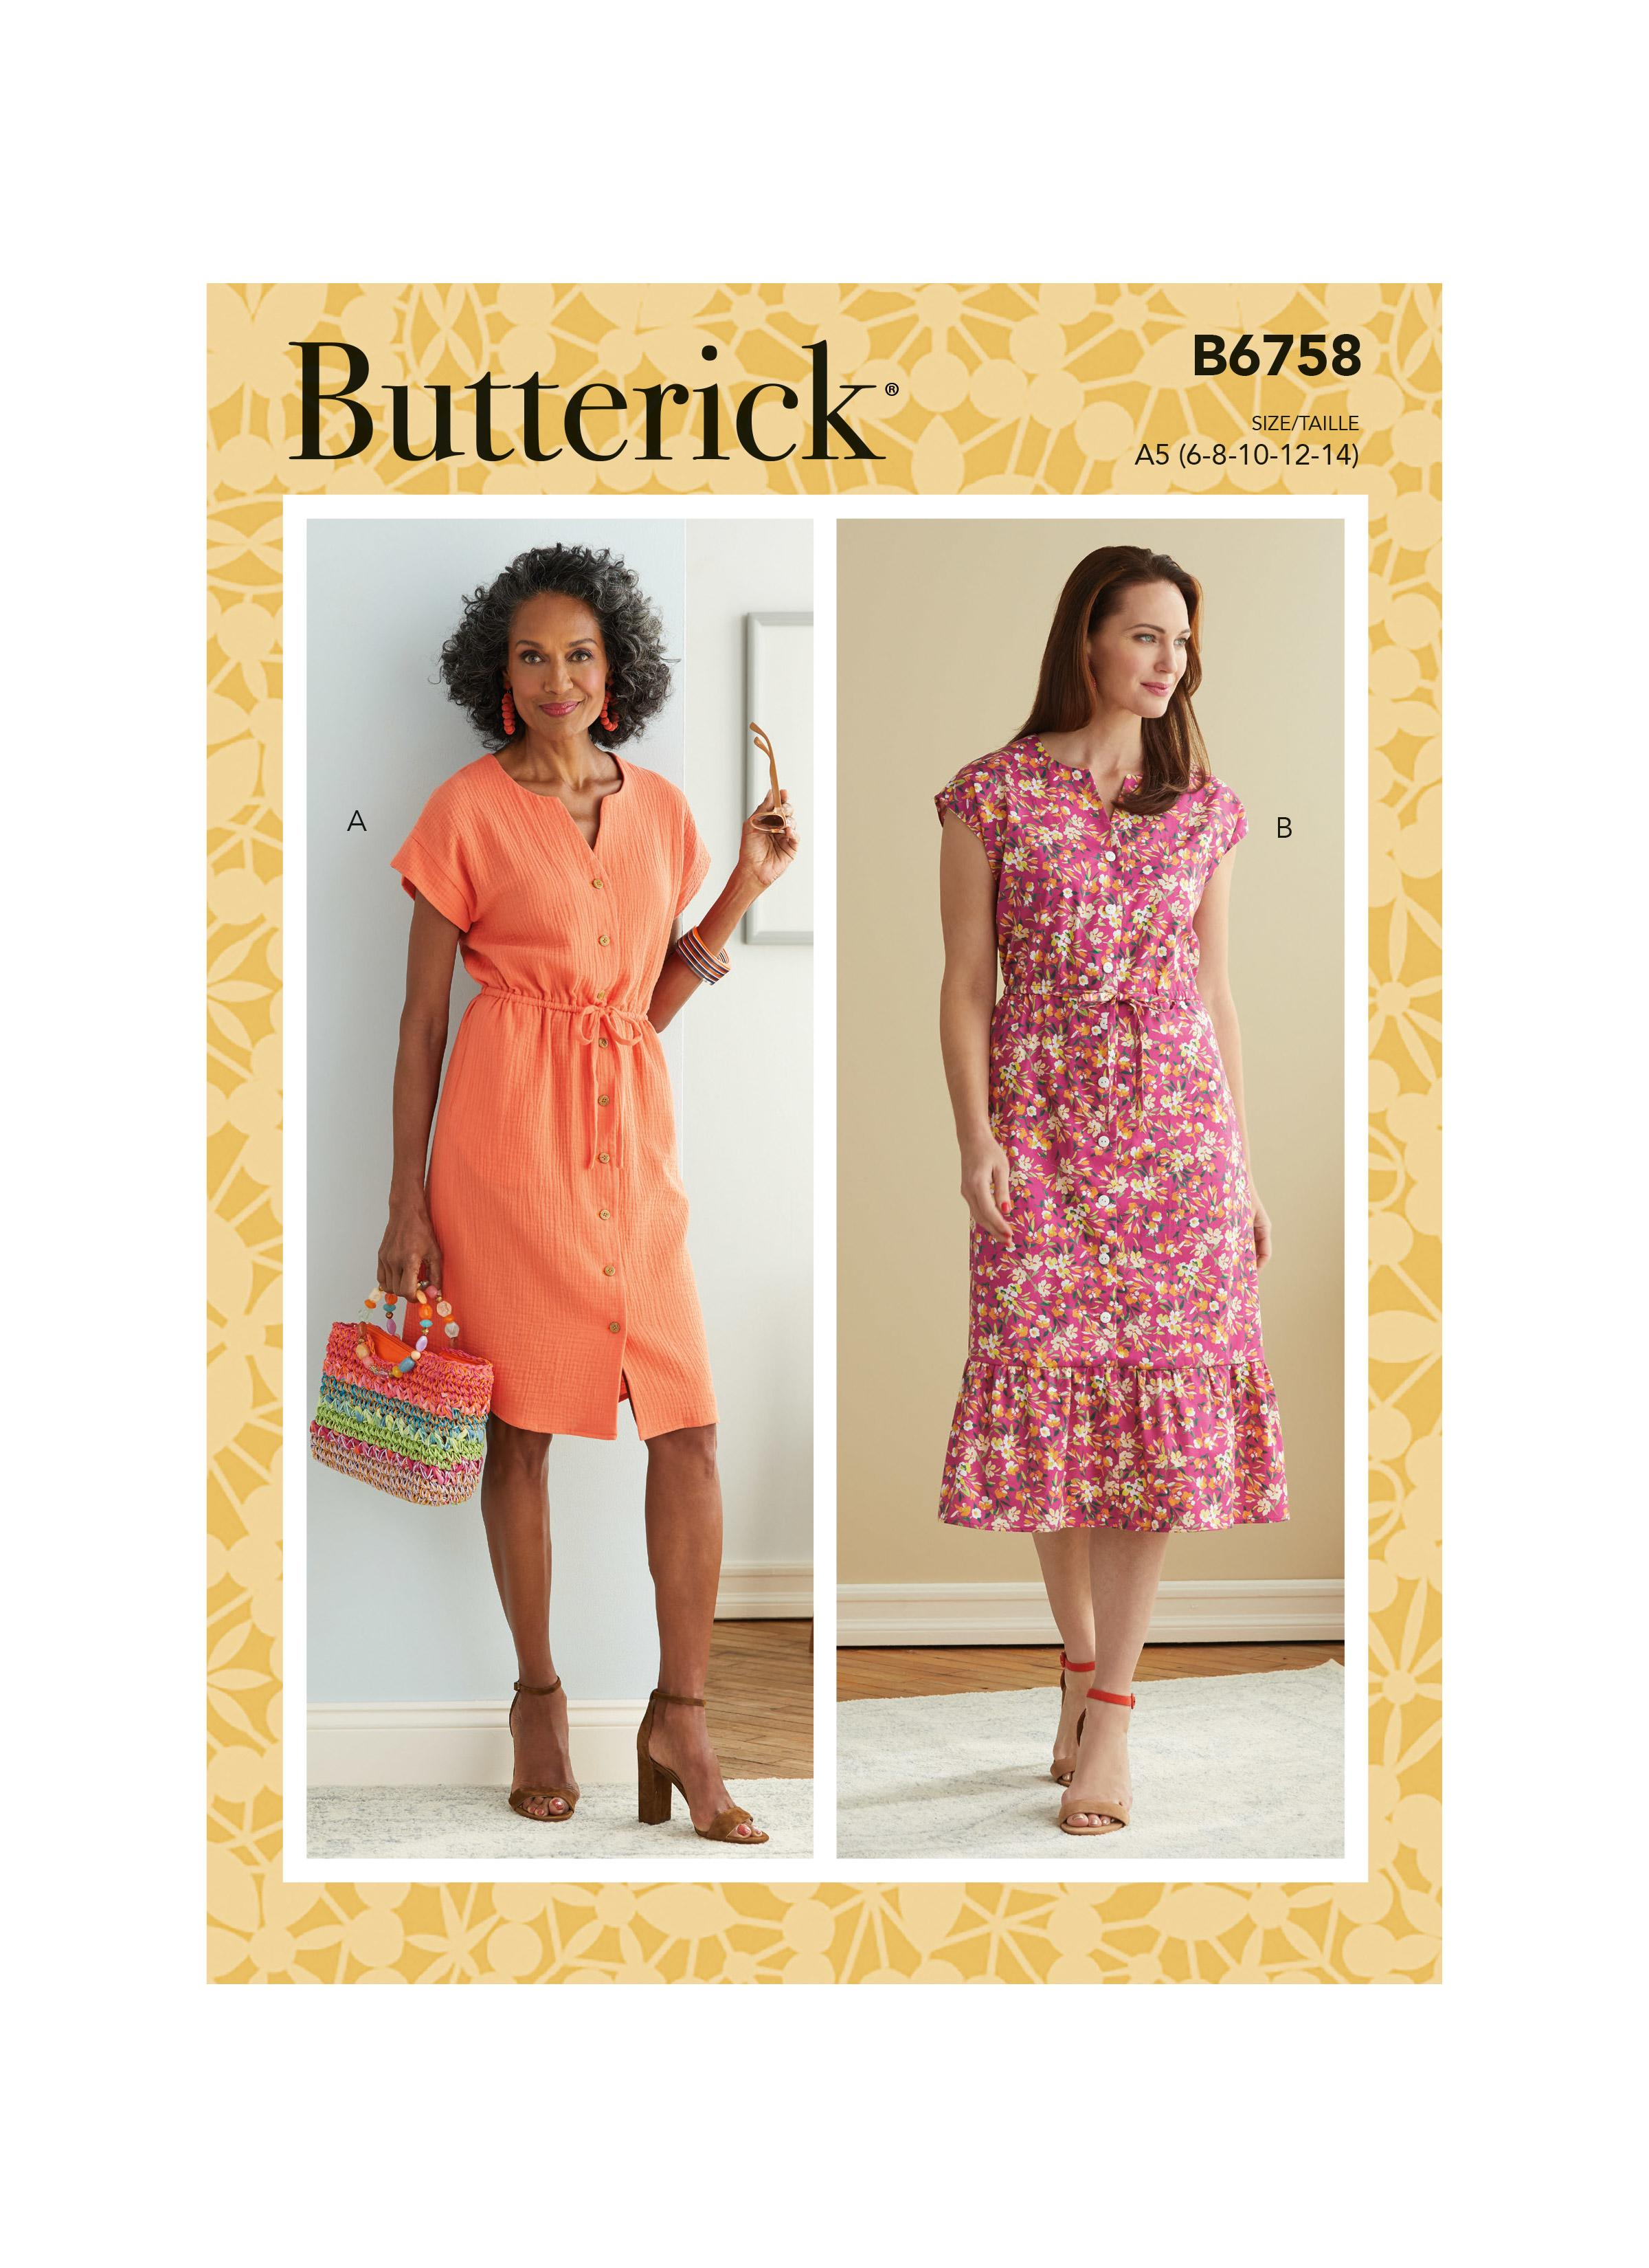 Butterick B6758 Misses' & Misses' Petite Dress